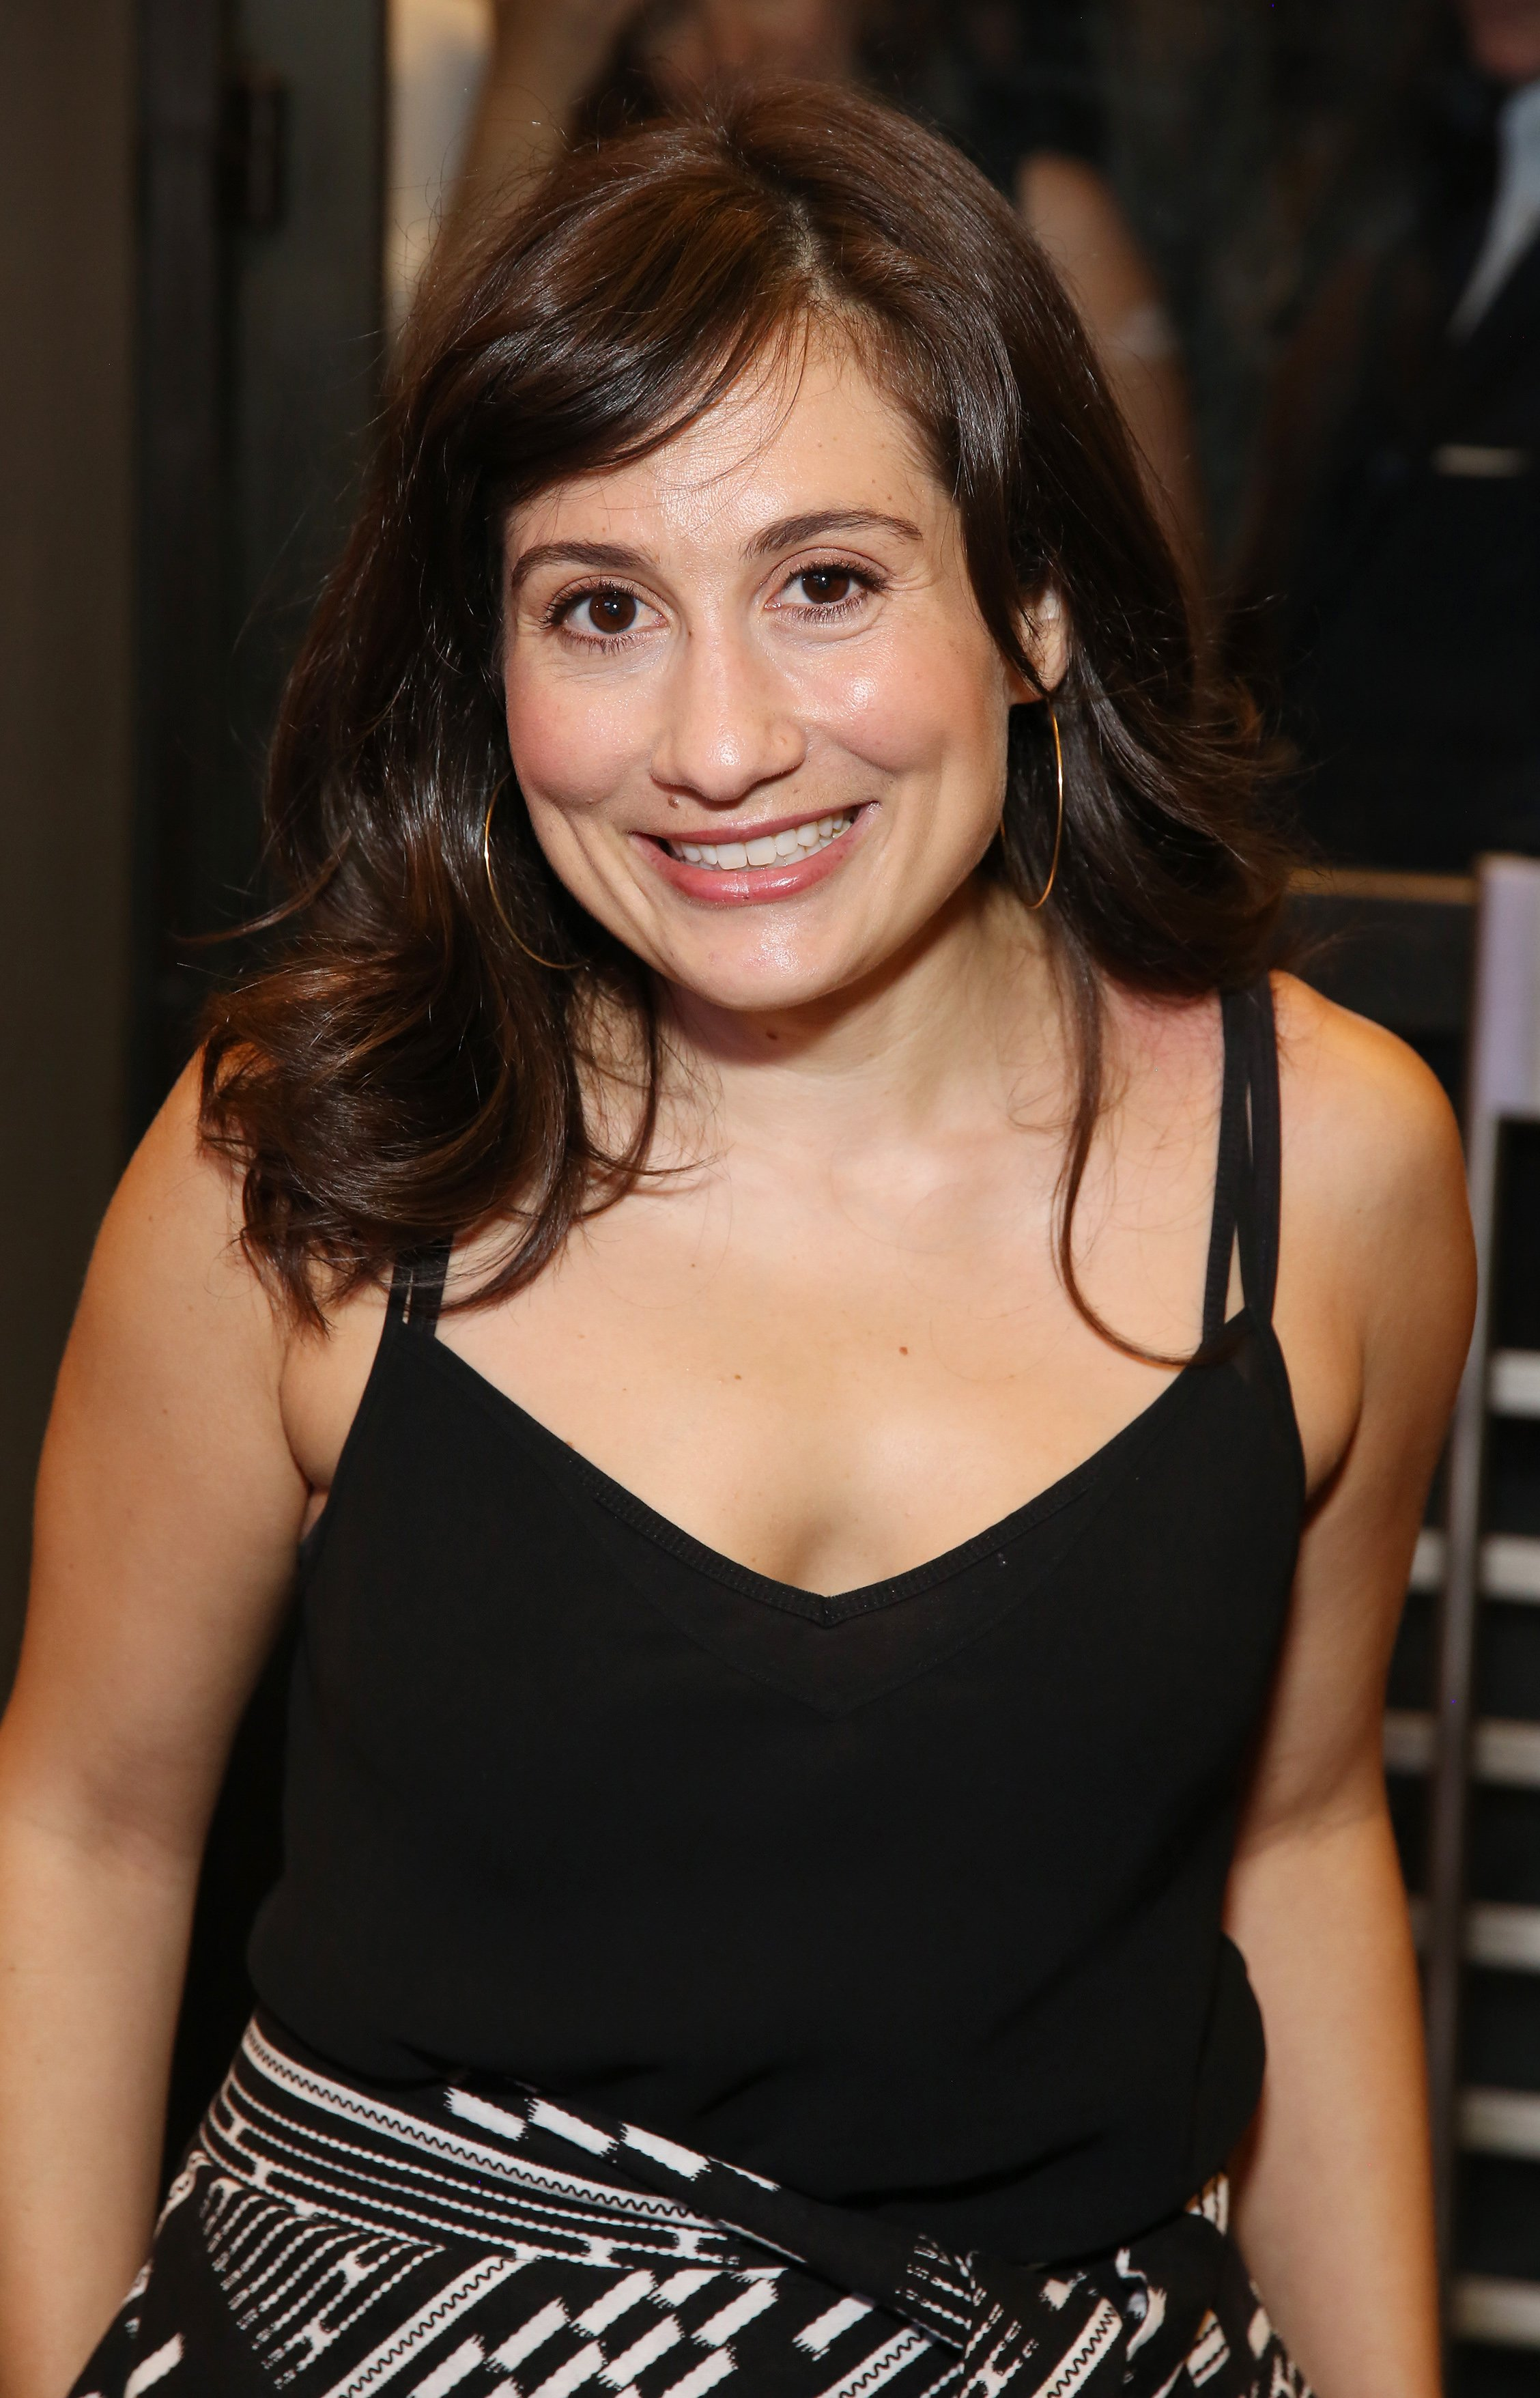 Image Source: Getty Images/A photo of Lucy DeVito